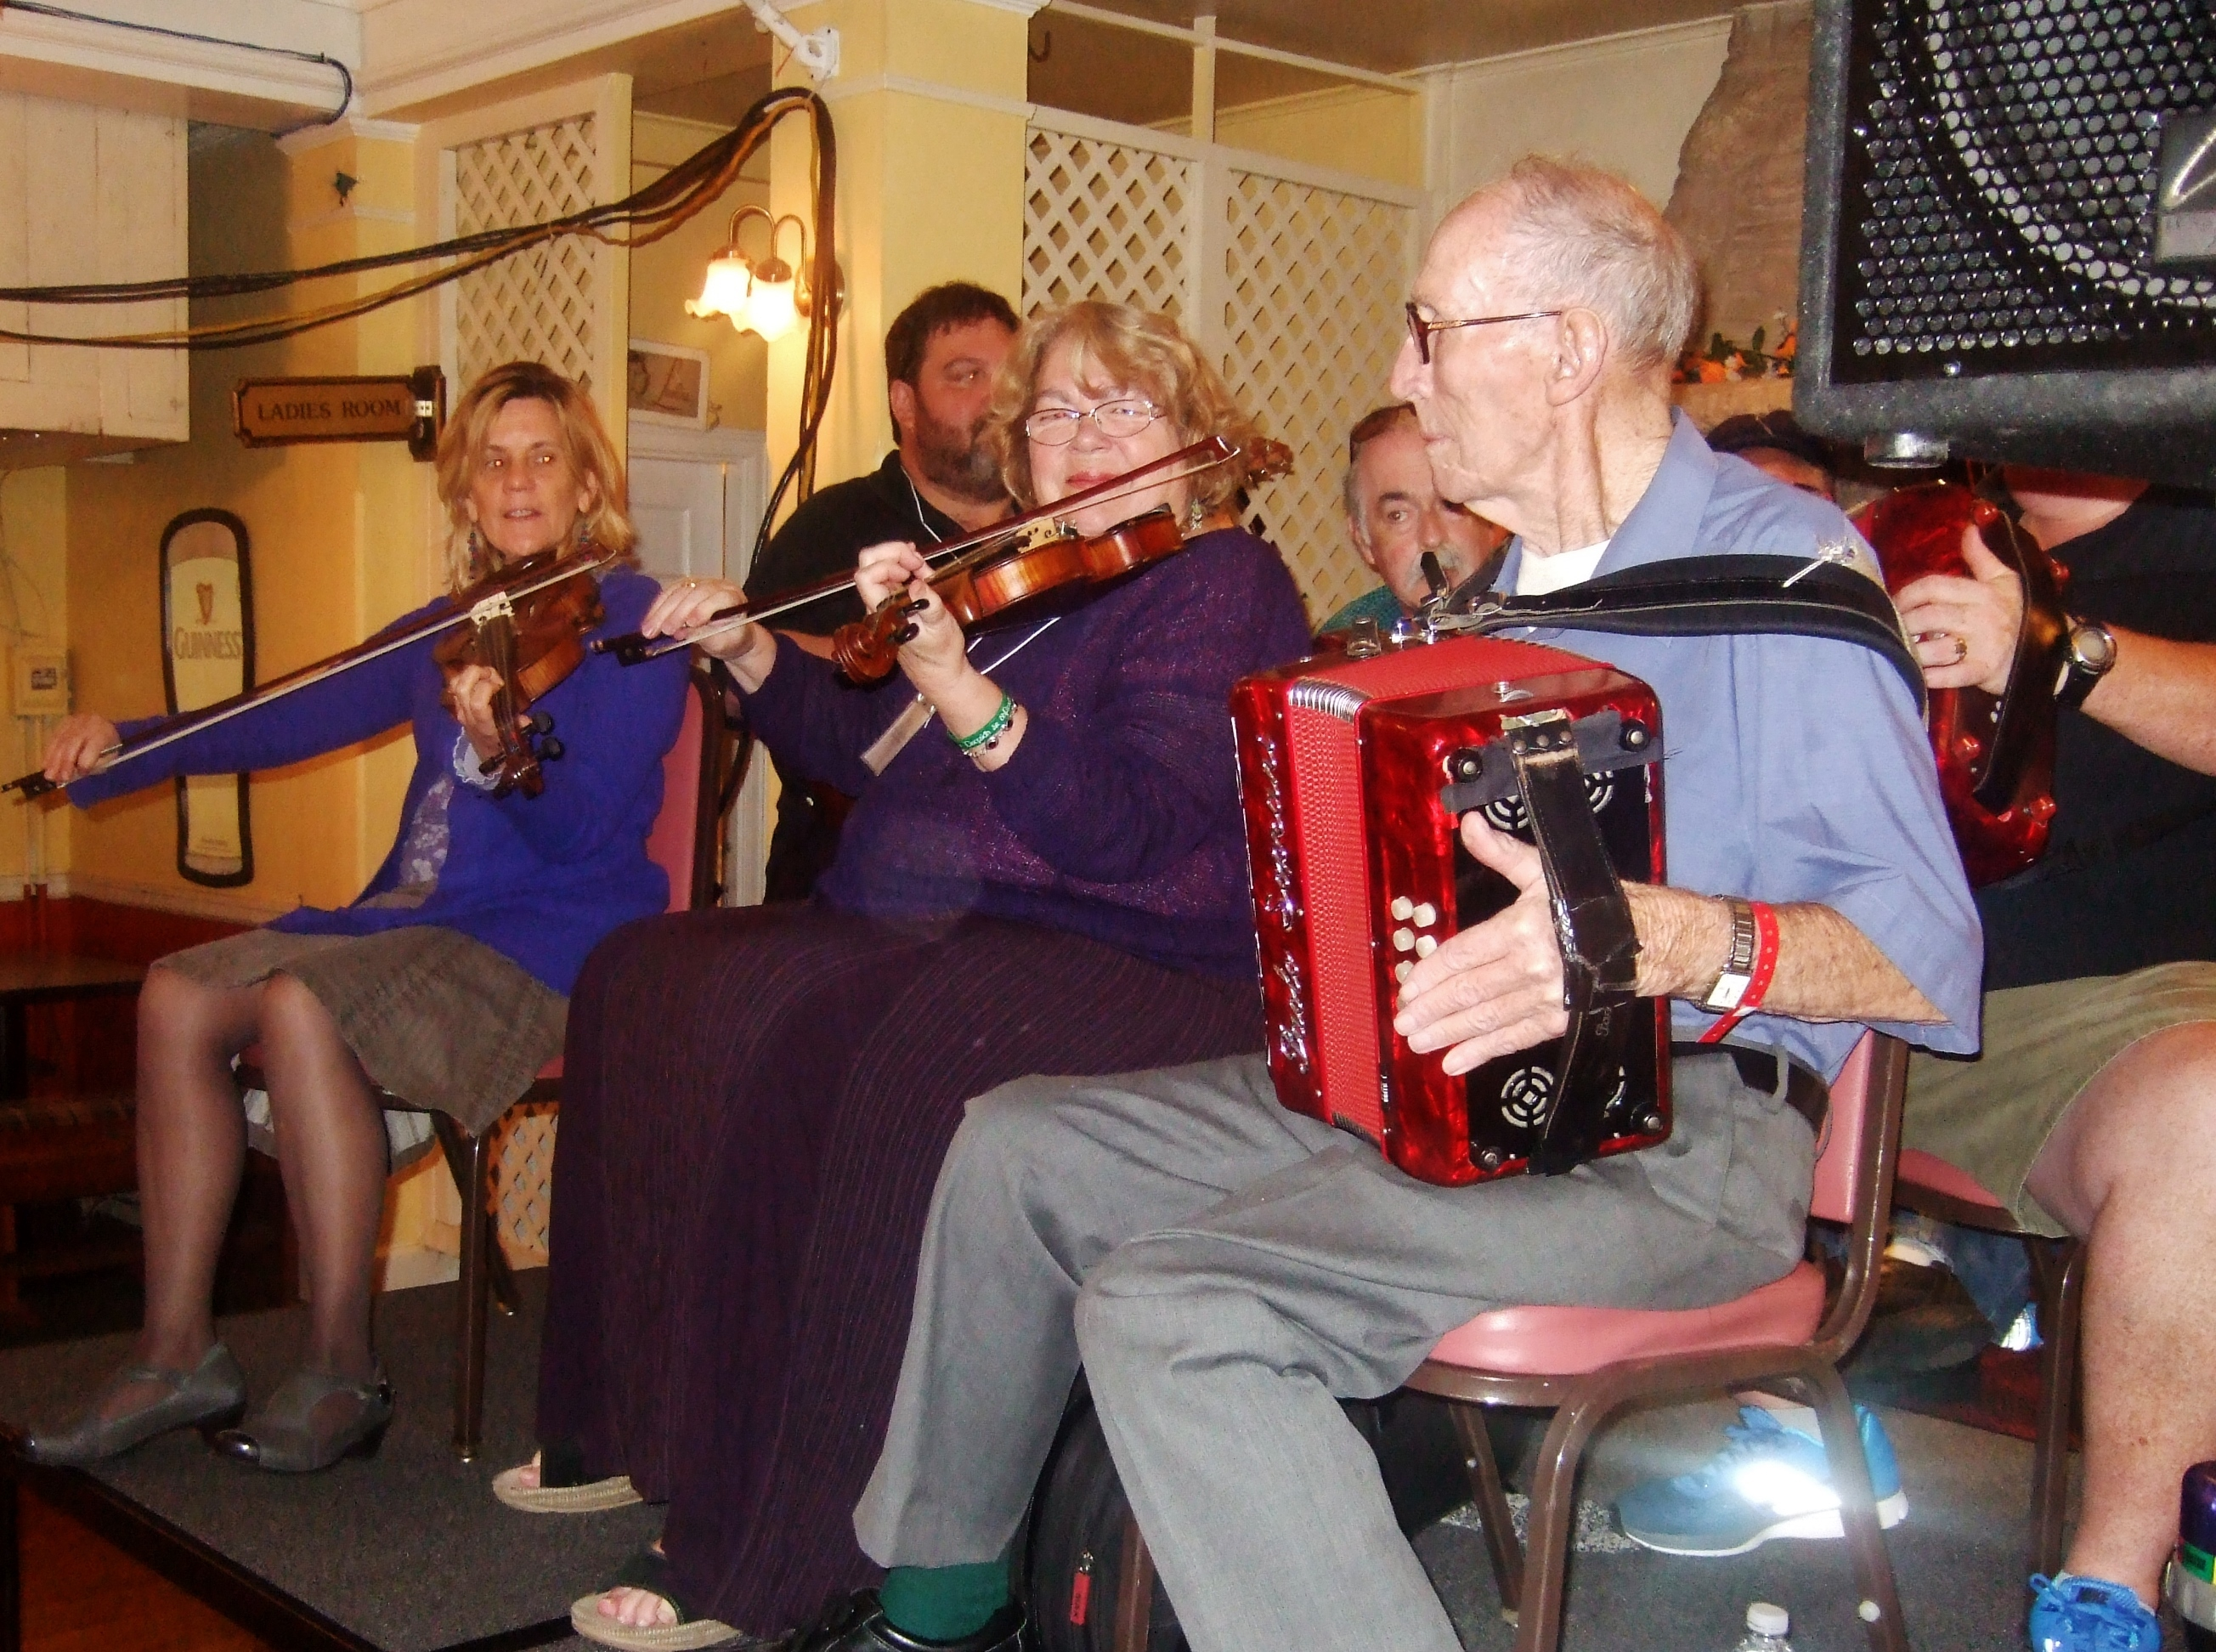 The Philadelphia Ceili Group musicians played a memorial Session in honor of John Kelly.